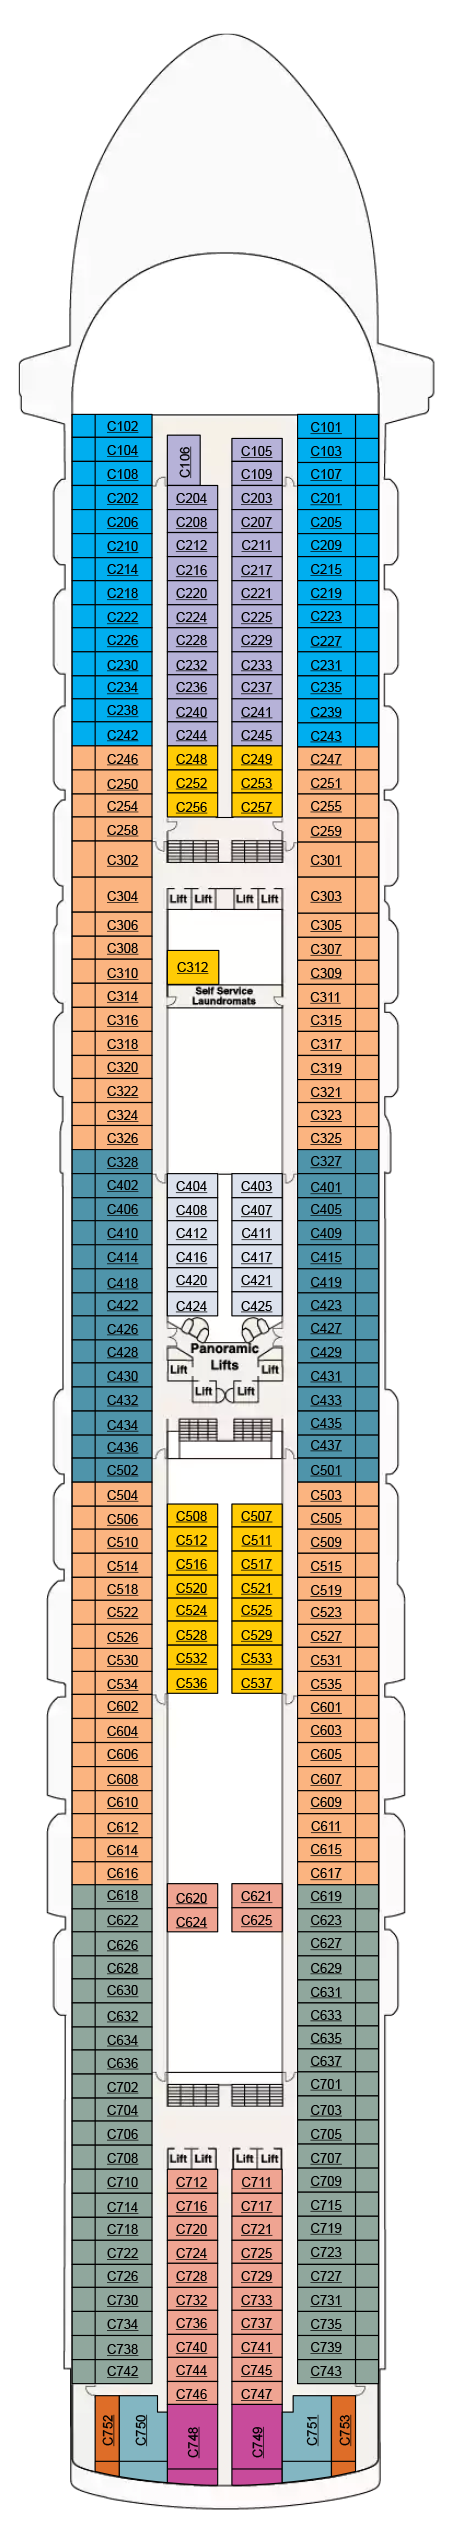 Crown Princess Deck Plans Cruiseind